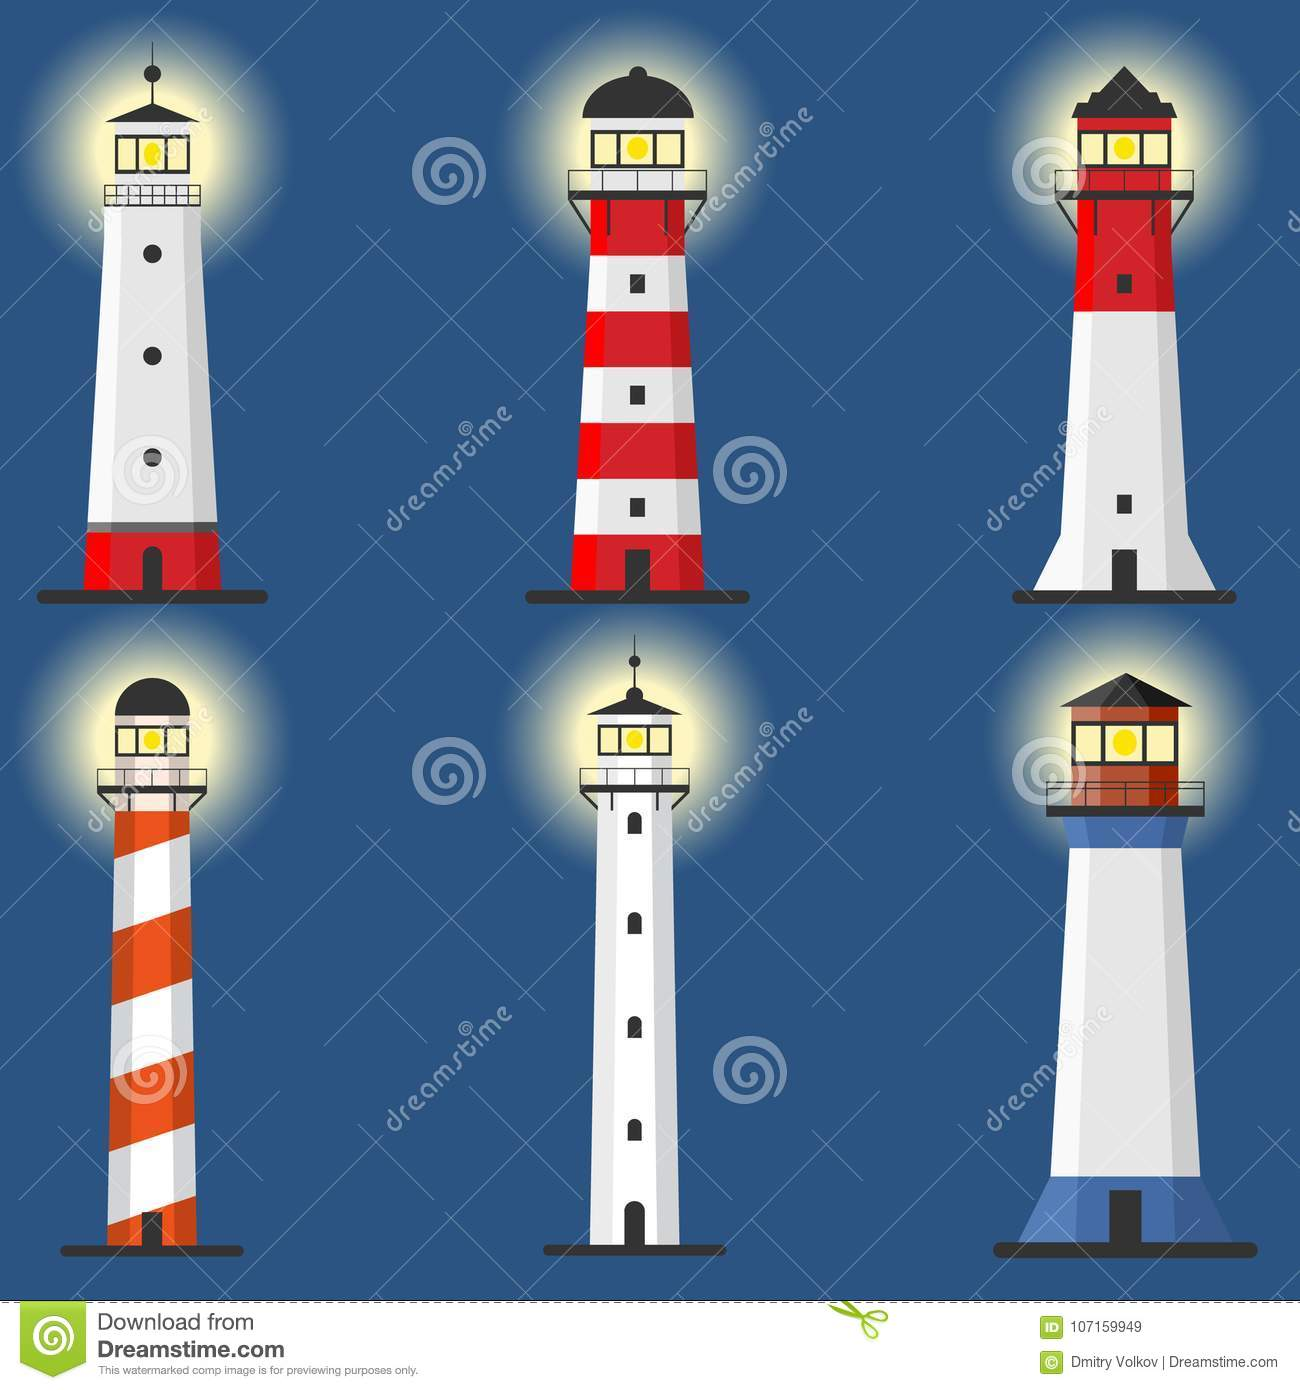 How to set the lighthouses 29